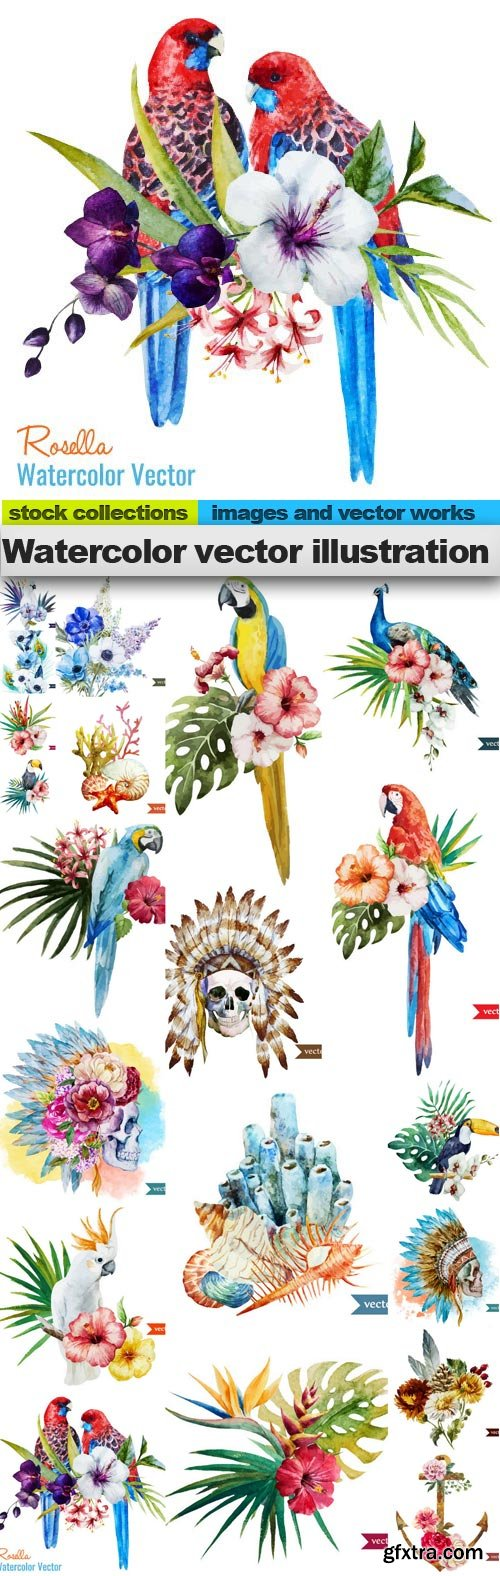 Watercolor vector illustration, 20 x EPS